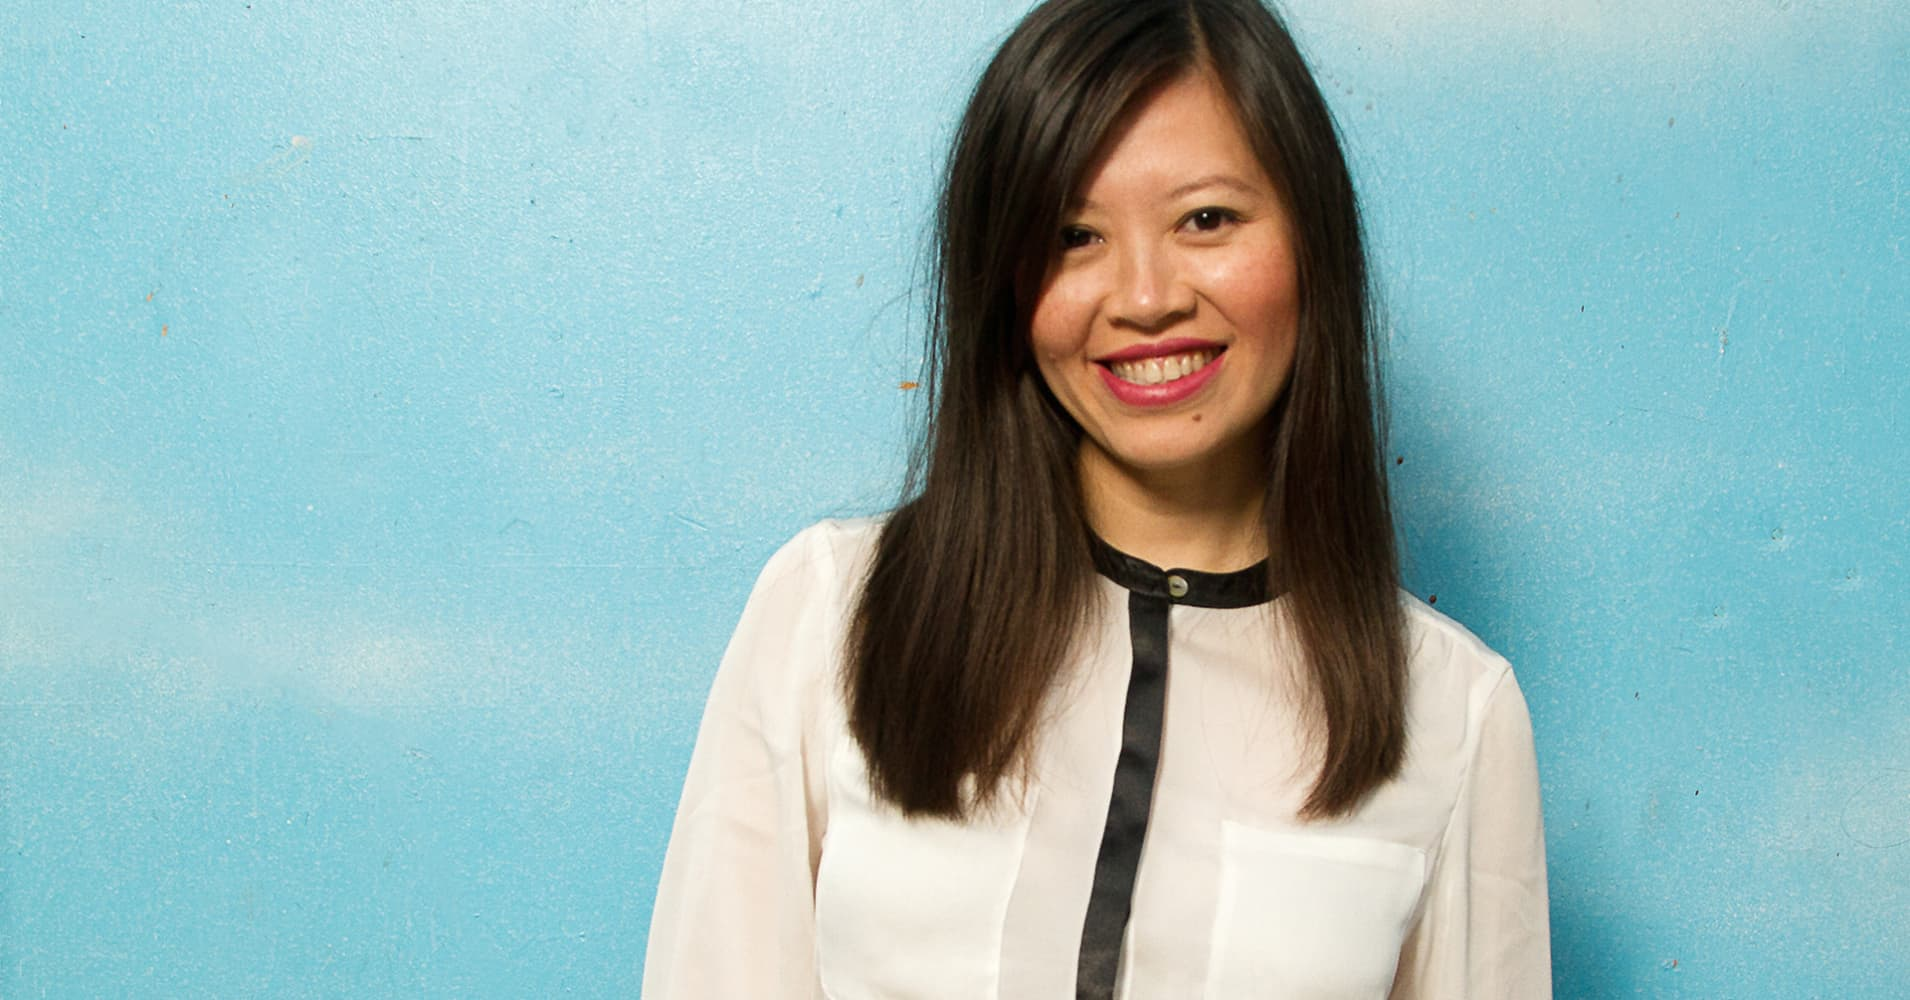 This Tech CEO Fled Vietnam as a Four-year-old. Here's What She's Doing Now